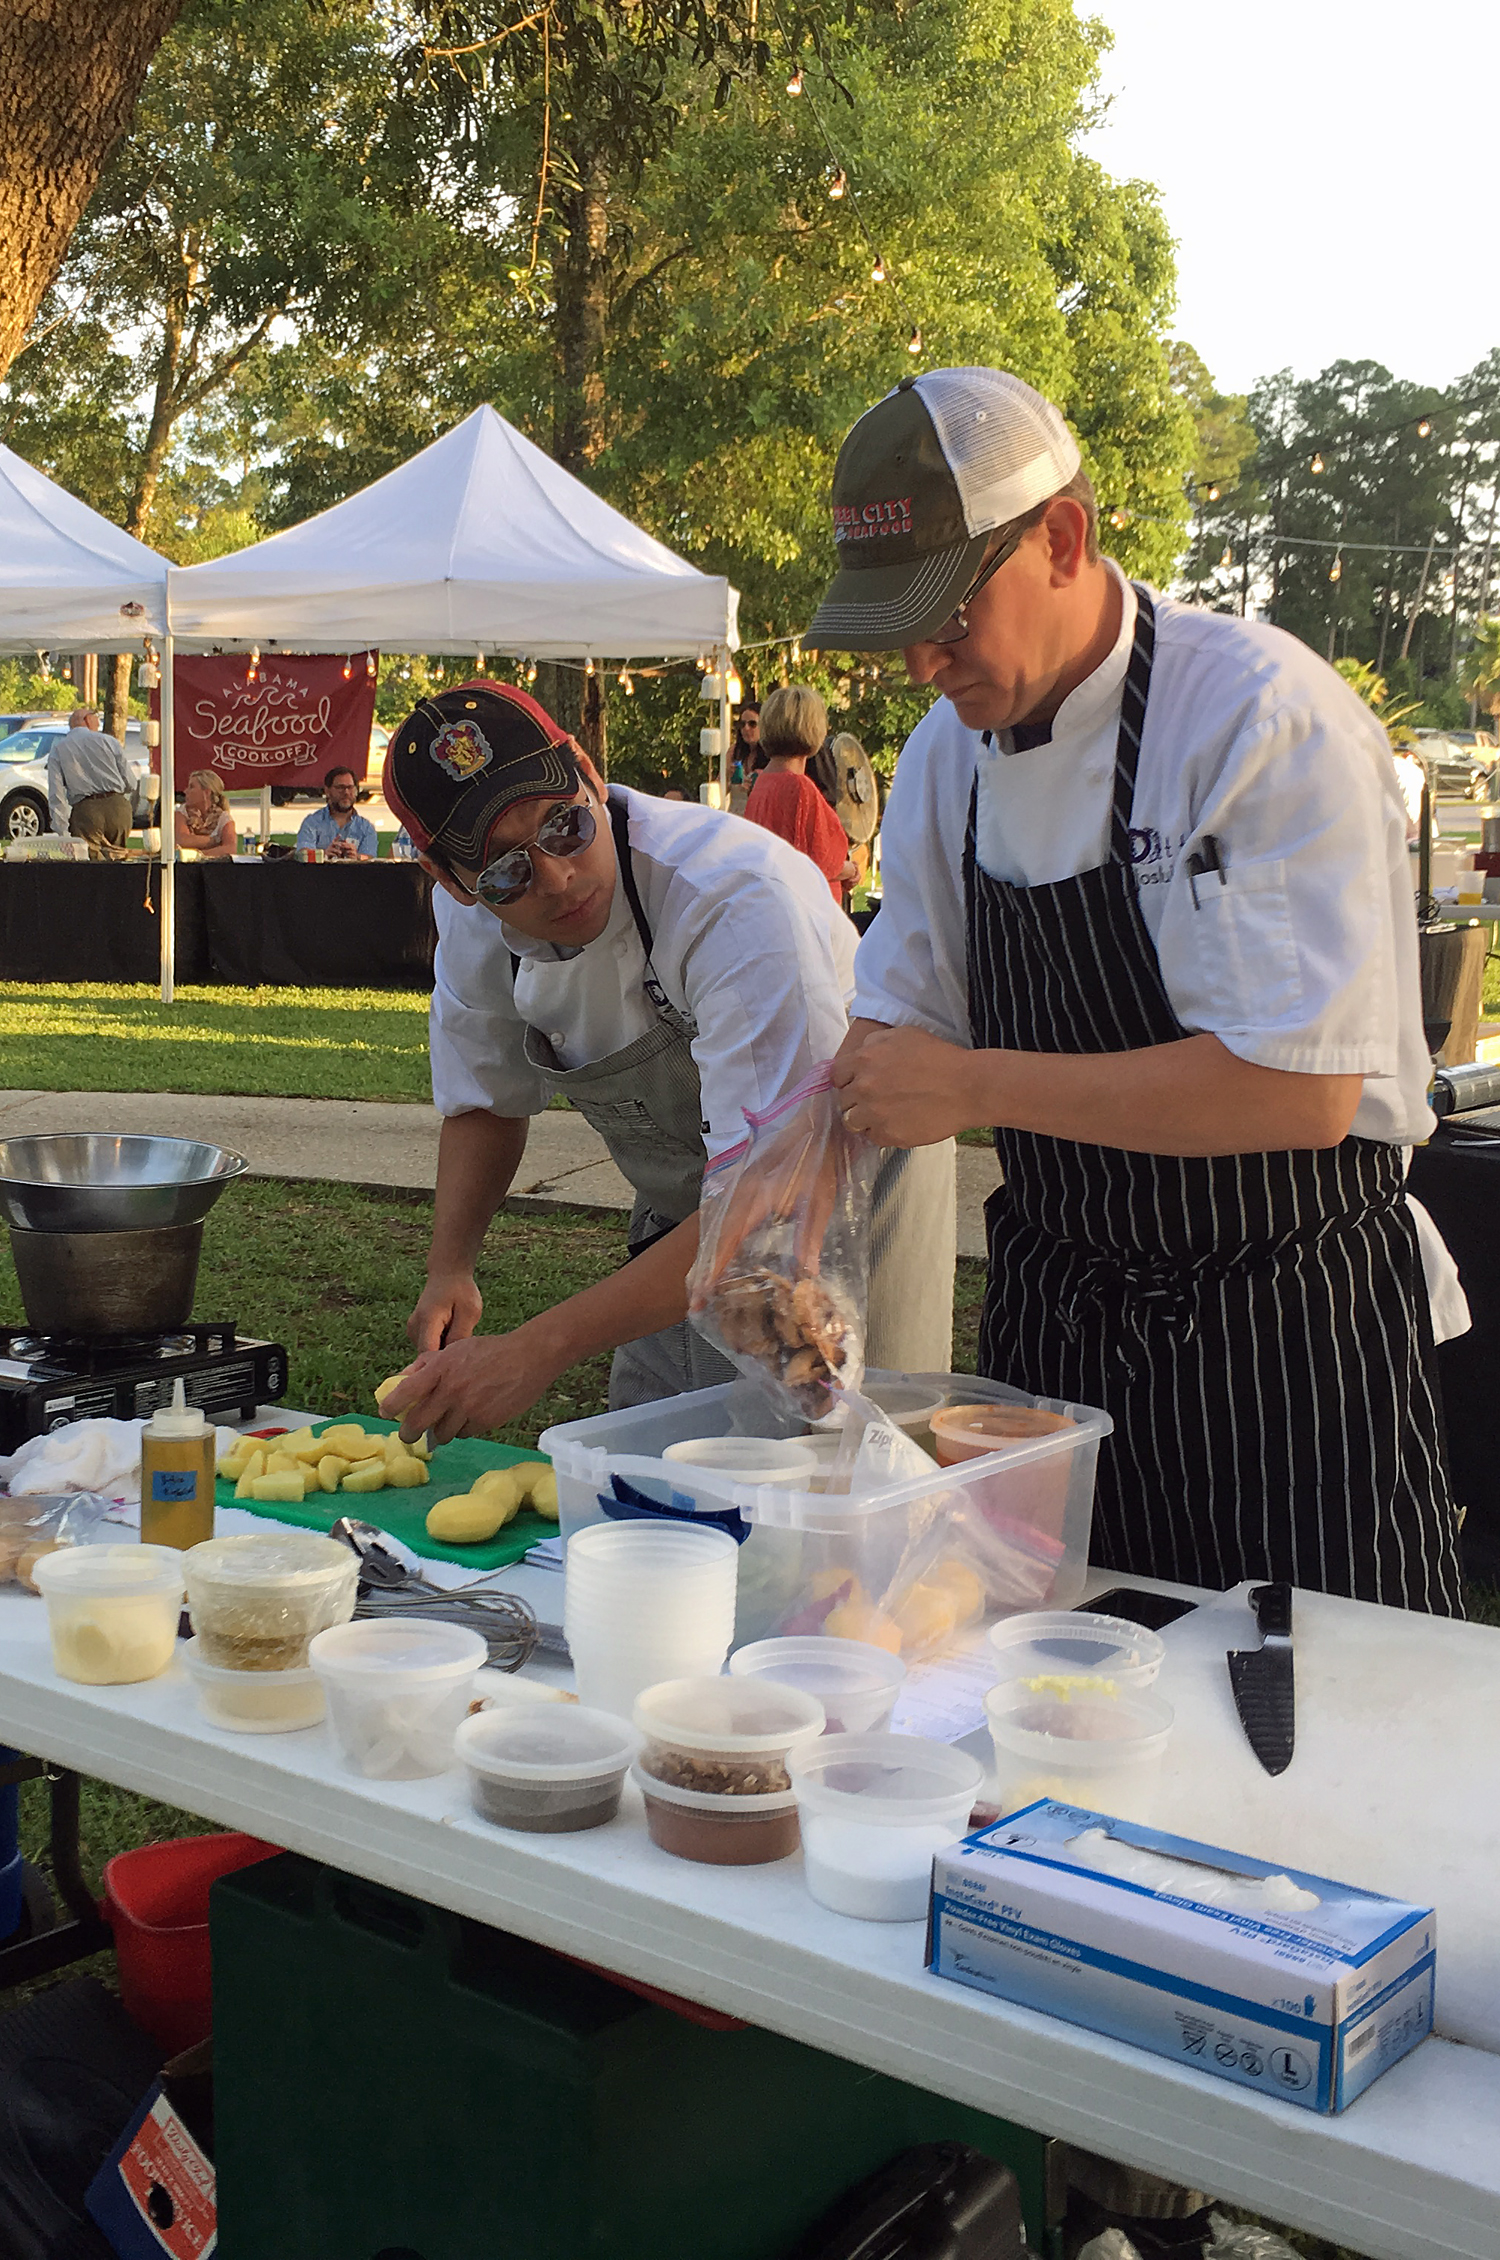 Top chefs compete at Alabama Seafood Cook-Off